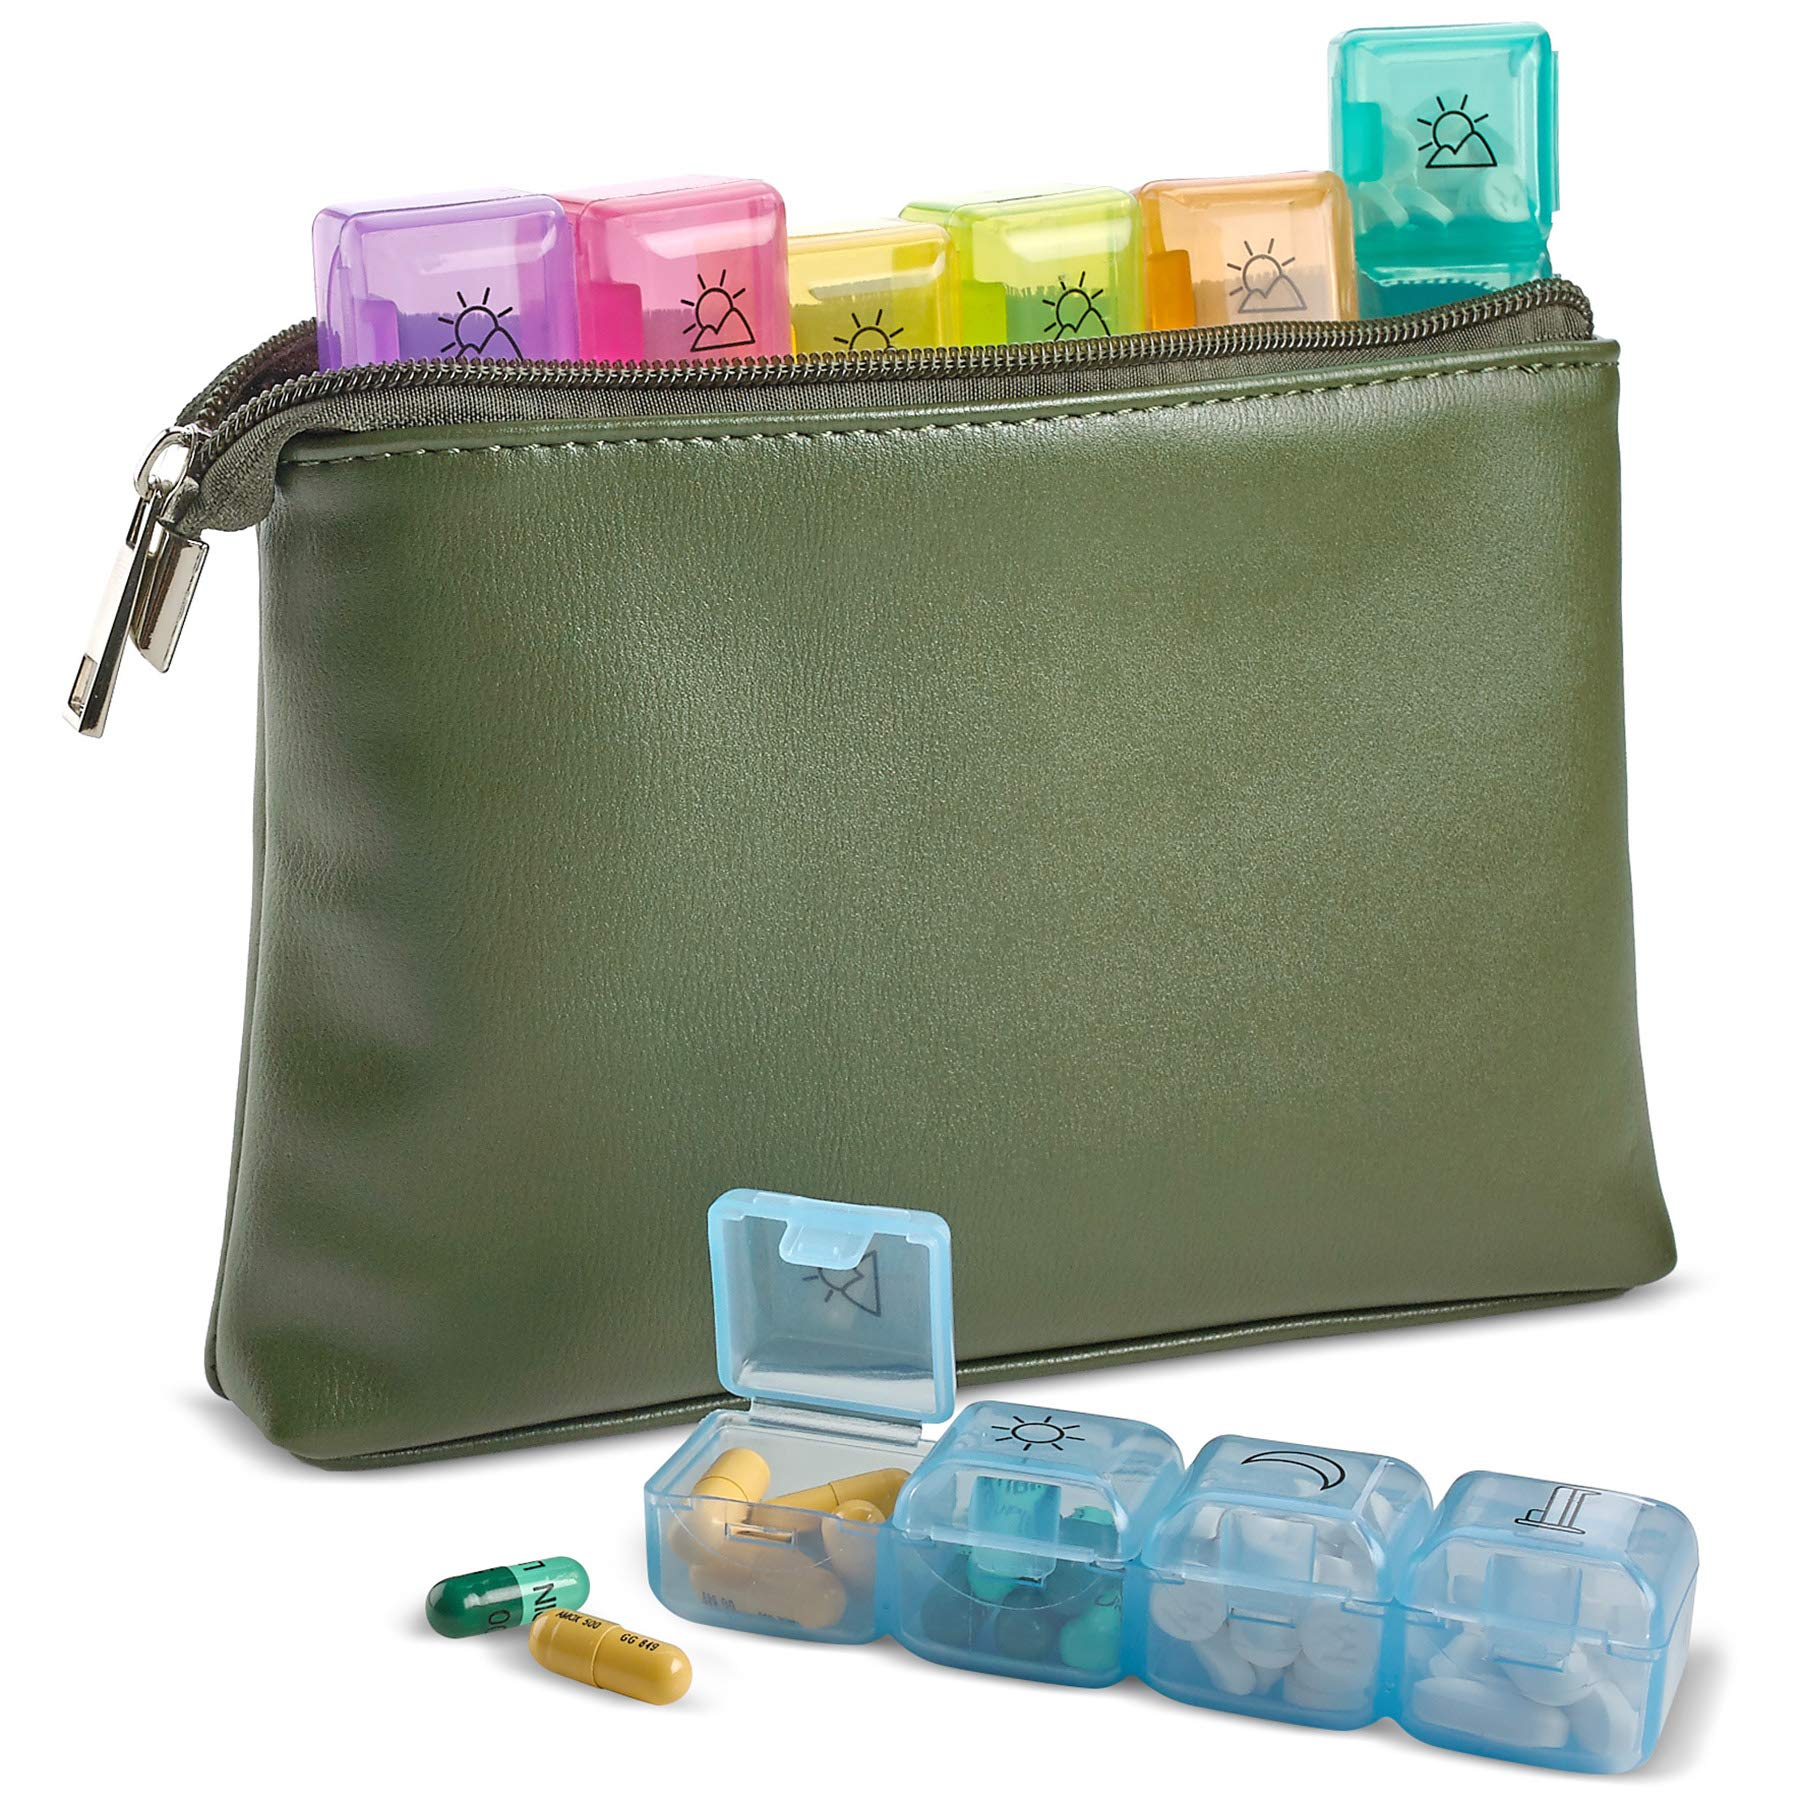 Weekly Travel Pill Organizer - 7-Days per Week, Zipper Wallet Pouch and Daily AM PM 4 Times a Day Boxes for Pills, Vitamins and Medication with Individual Pill Container Dispenser Case by MEDca